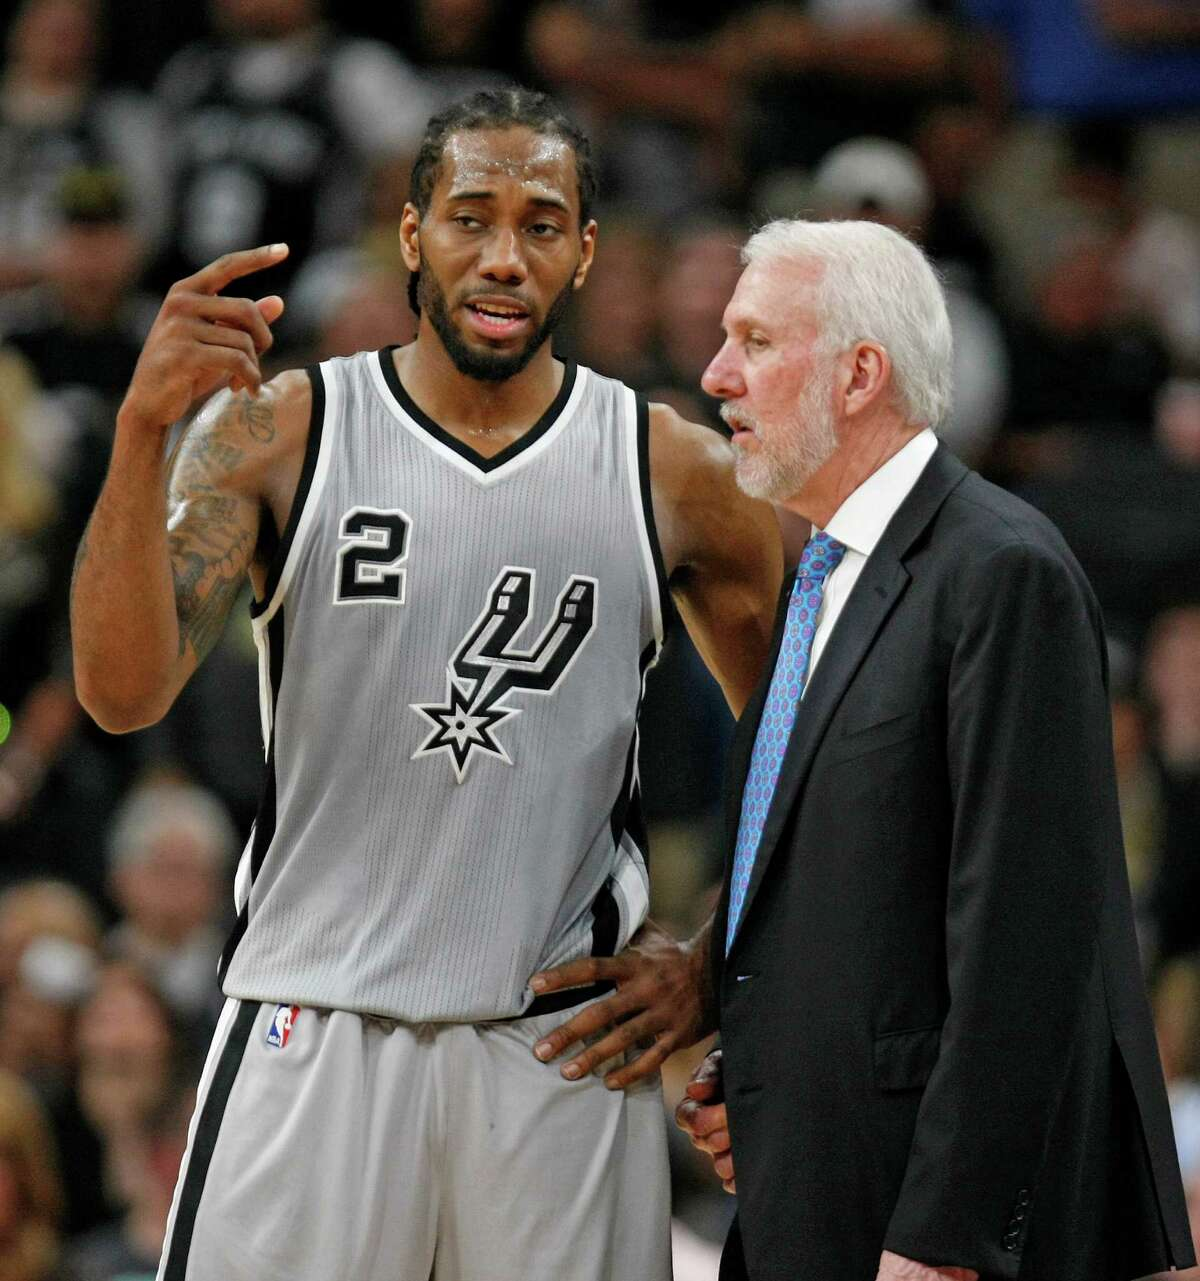 SAN ANTONIO,TX - MARCH 12: Kawhi Leonard #2 of the San Antonio Spurs talks with head coach Gregg Popovich at AT&T Center on March 12, 2016 in San Antonio, Texas. NOTE TO USER: User expressly acknowledges and agrees that , by downloading and or using this photograph, User is consenting to the terms and conditions of the Getty Images License Agreement.